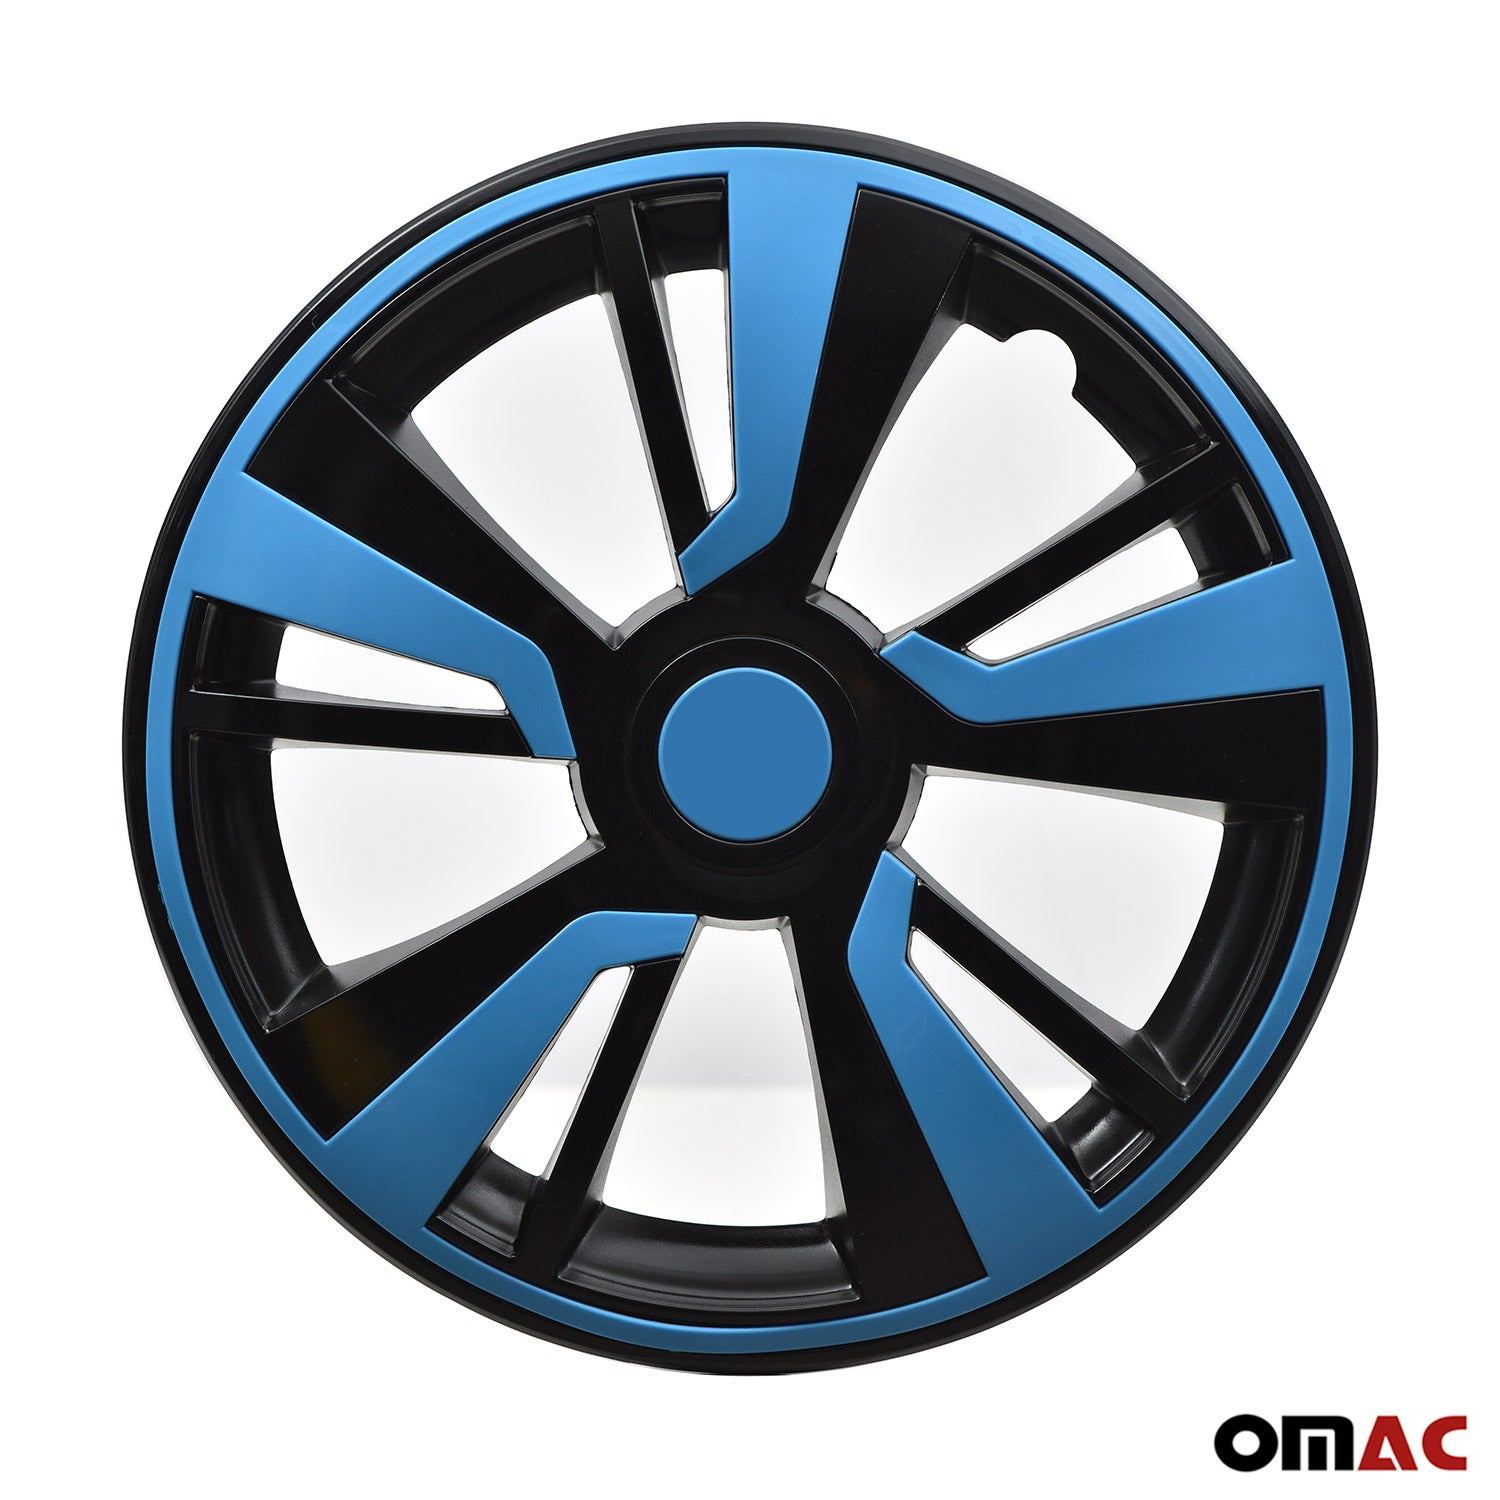 15'' Hubcaps Wheel Rim Cover Black with Blue Insert 4pcs Set For Hyundai